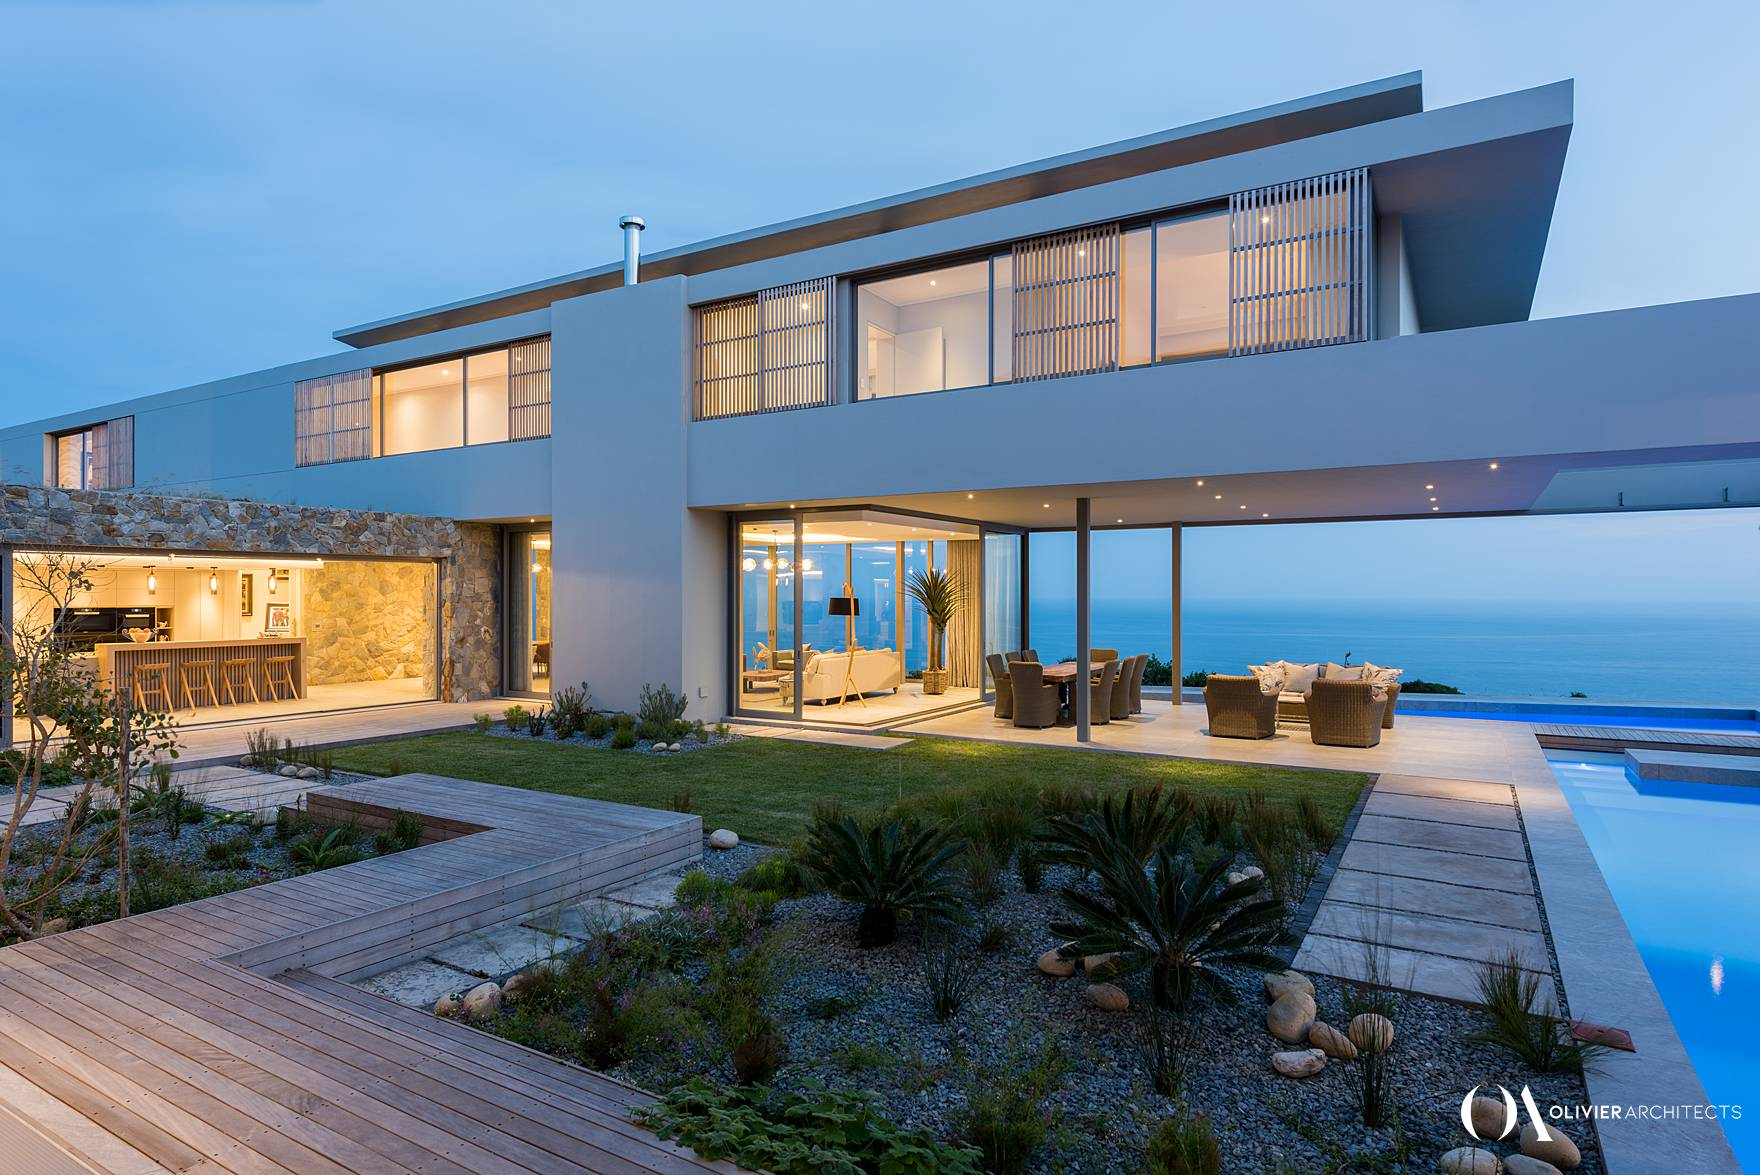 Luxury modernist home. Knysna, Pezula Private Estate, High-end architecture - Olivier Architects